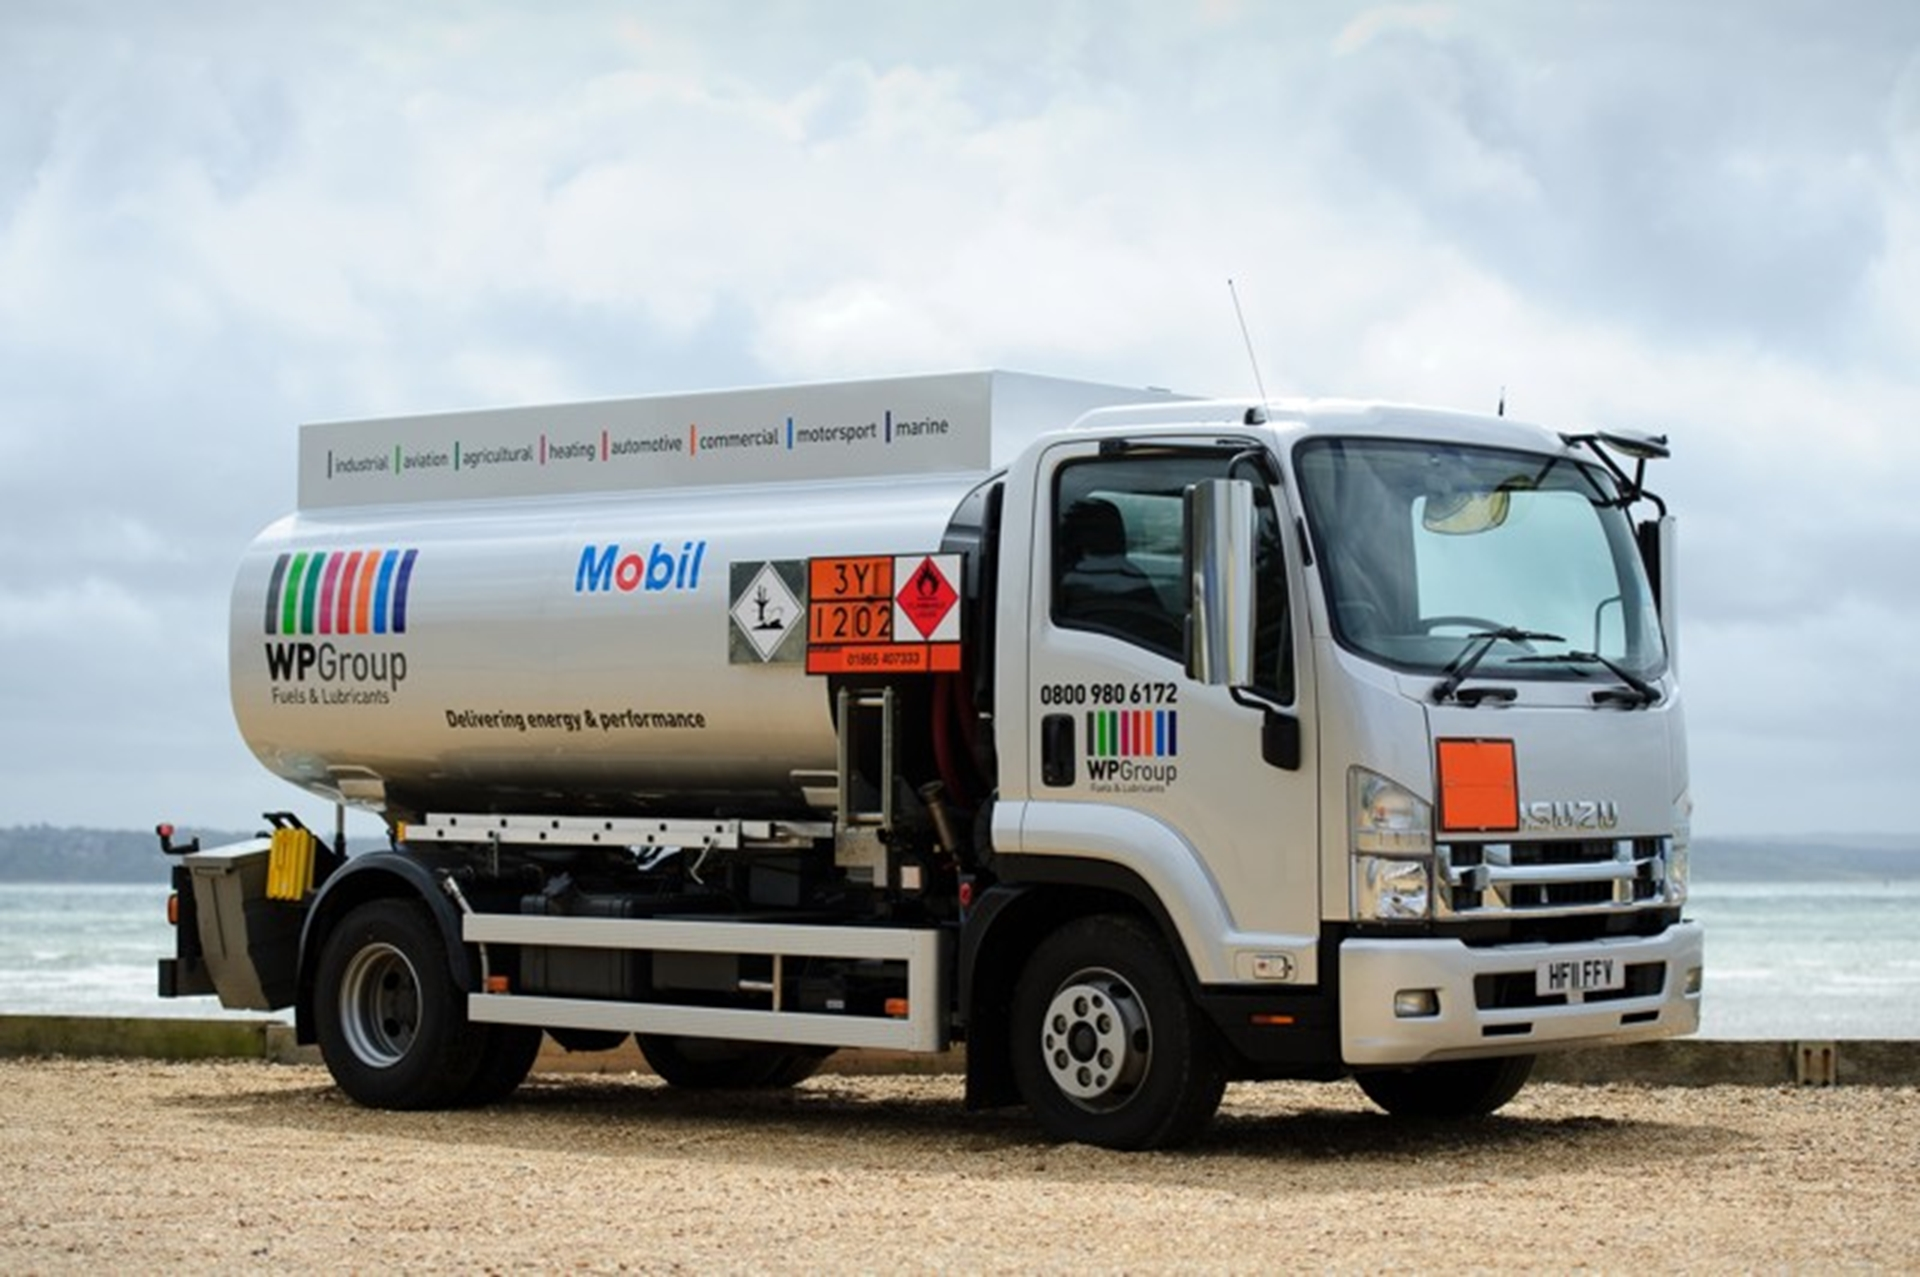 Southampton based oil and fuels distributor WP Group